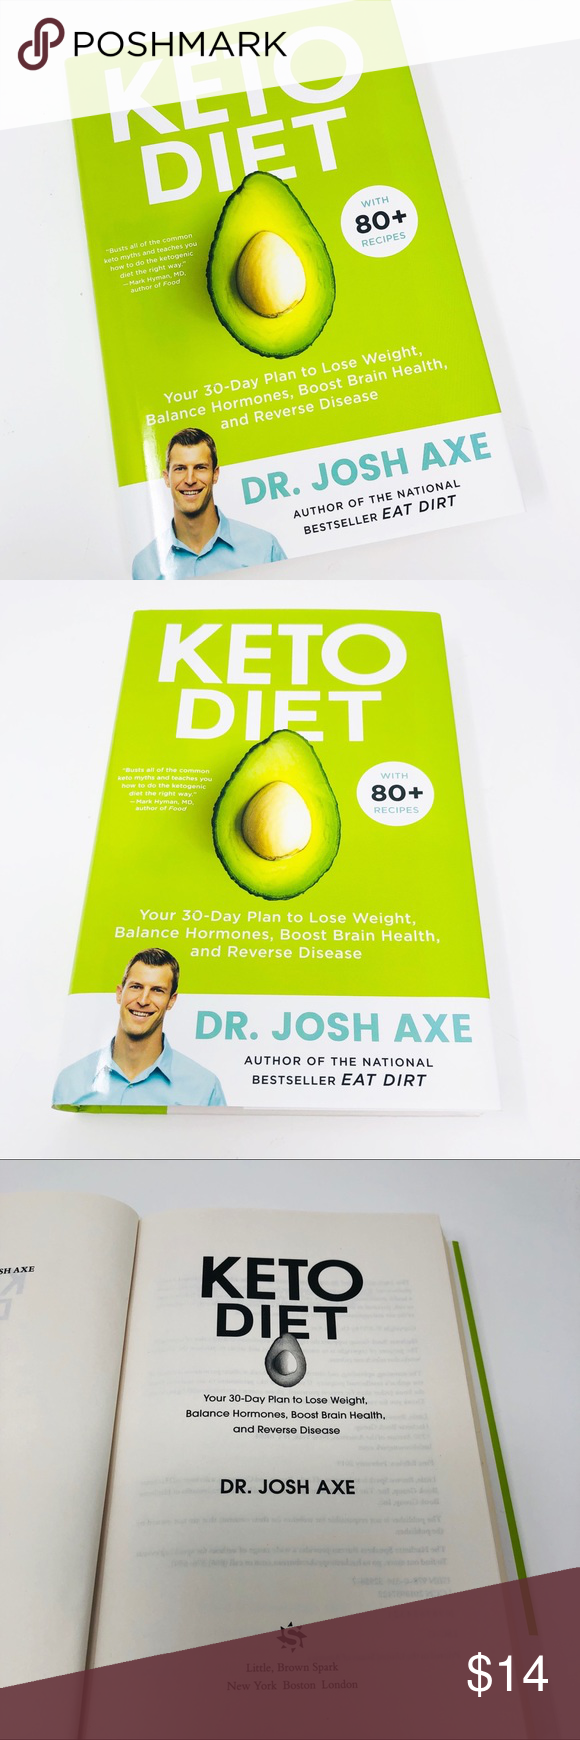 New Keto 30 Day Diet Dr Josh Axe Hardcover Book Diet Doctor Dr Josh Axe 30 Day Diet